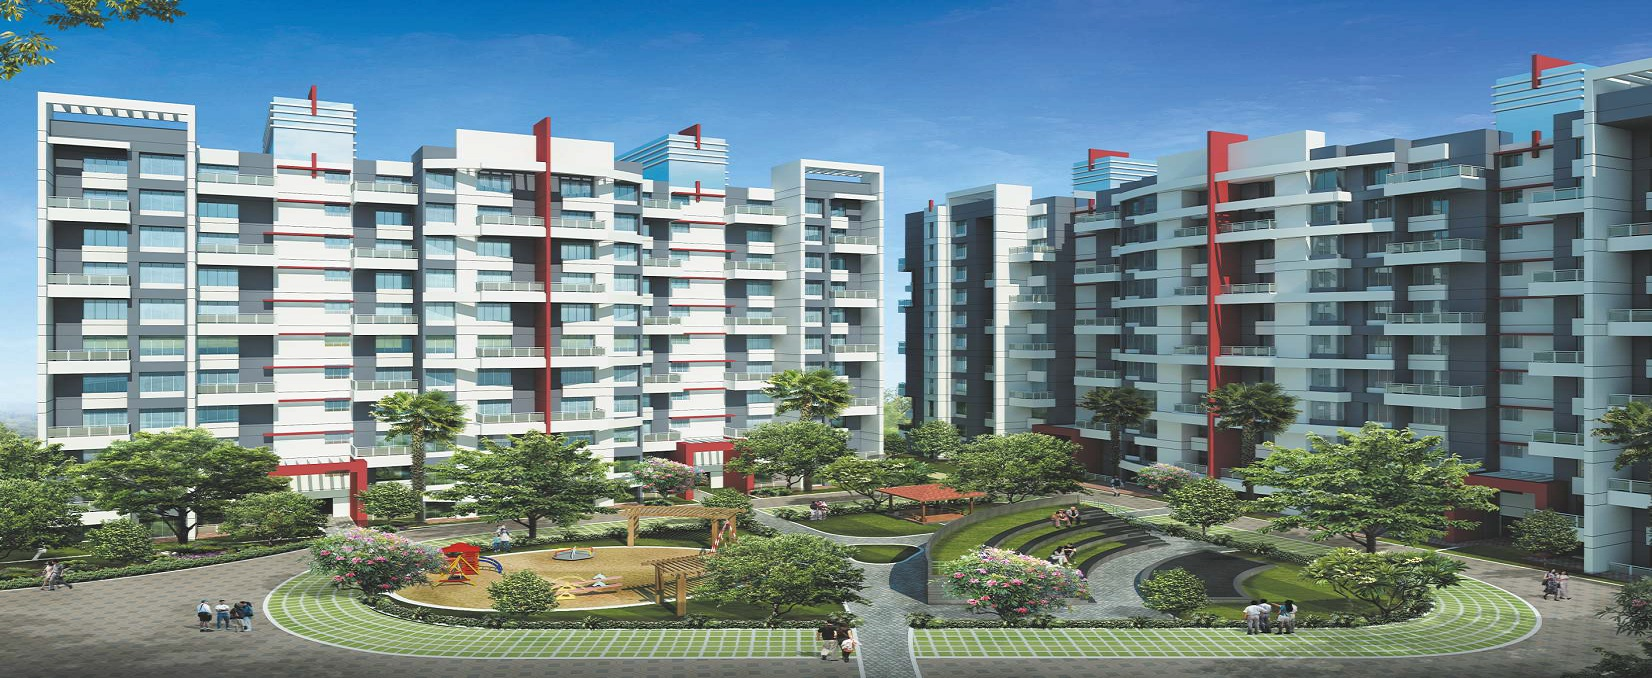 sukhwani scarlet project amenities features2